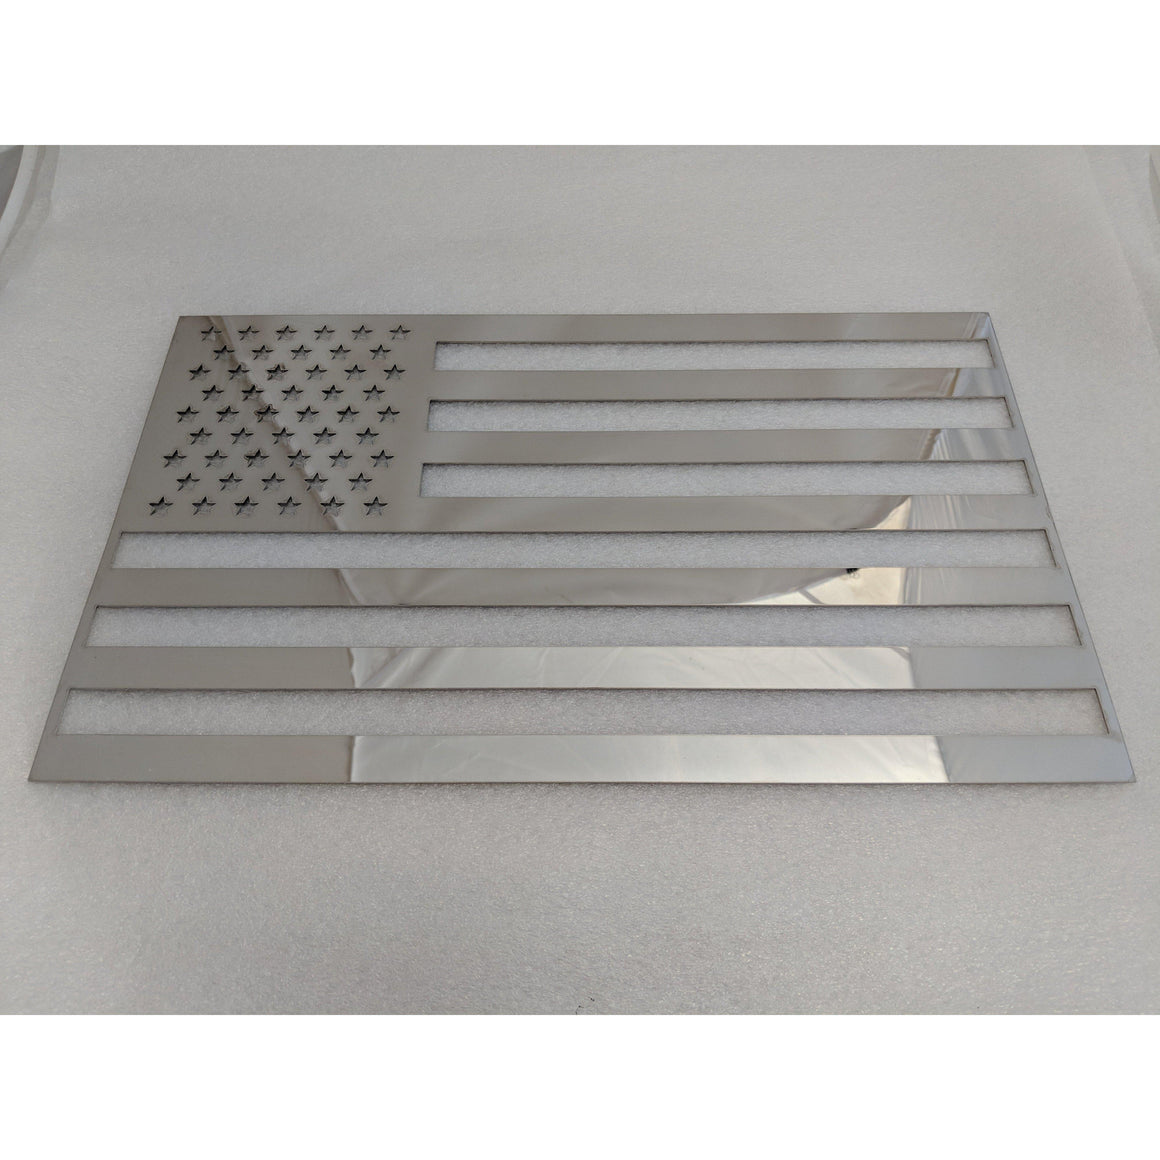 American Flag in mirror finish Stainless Steel